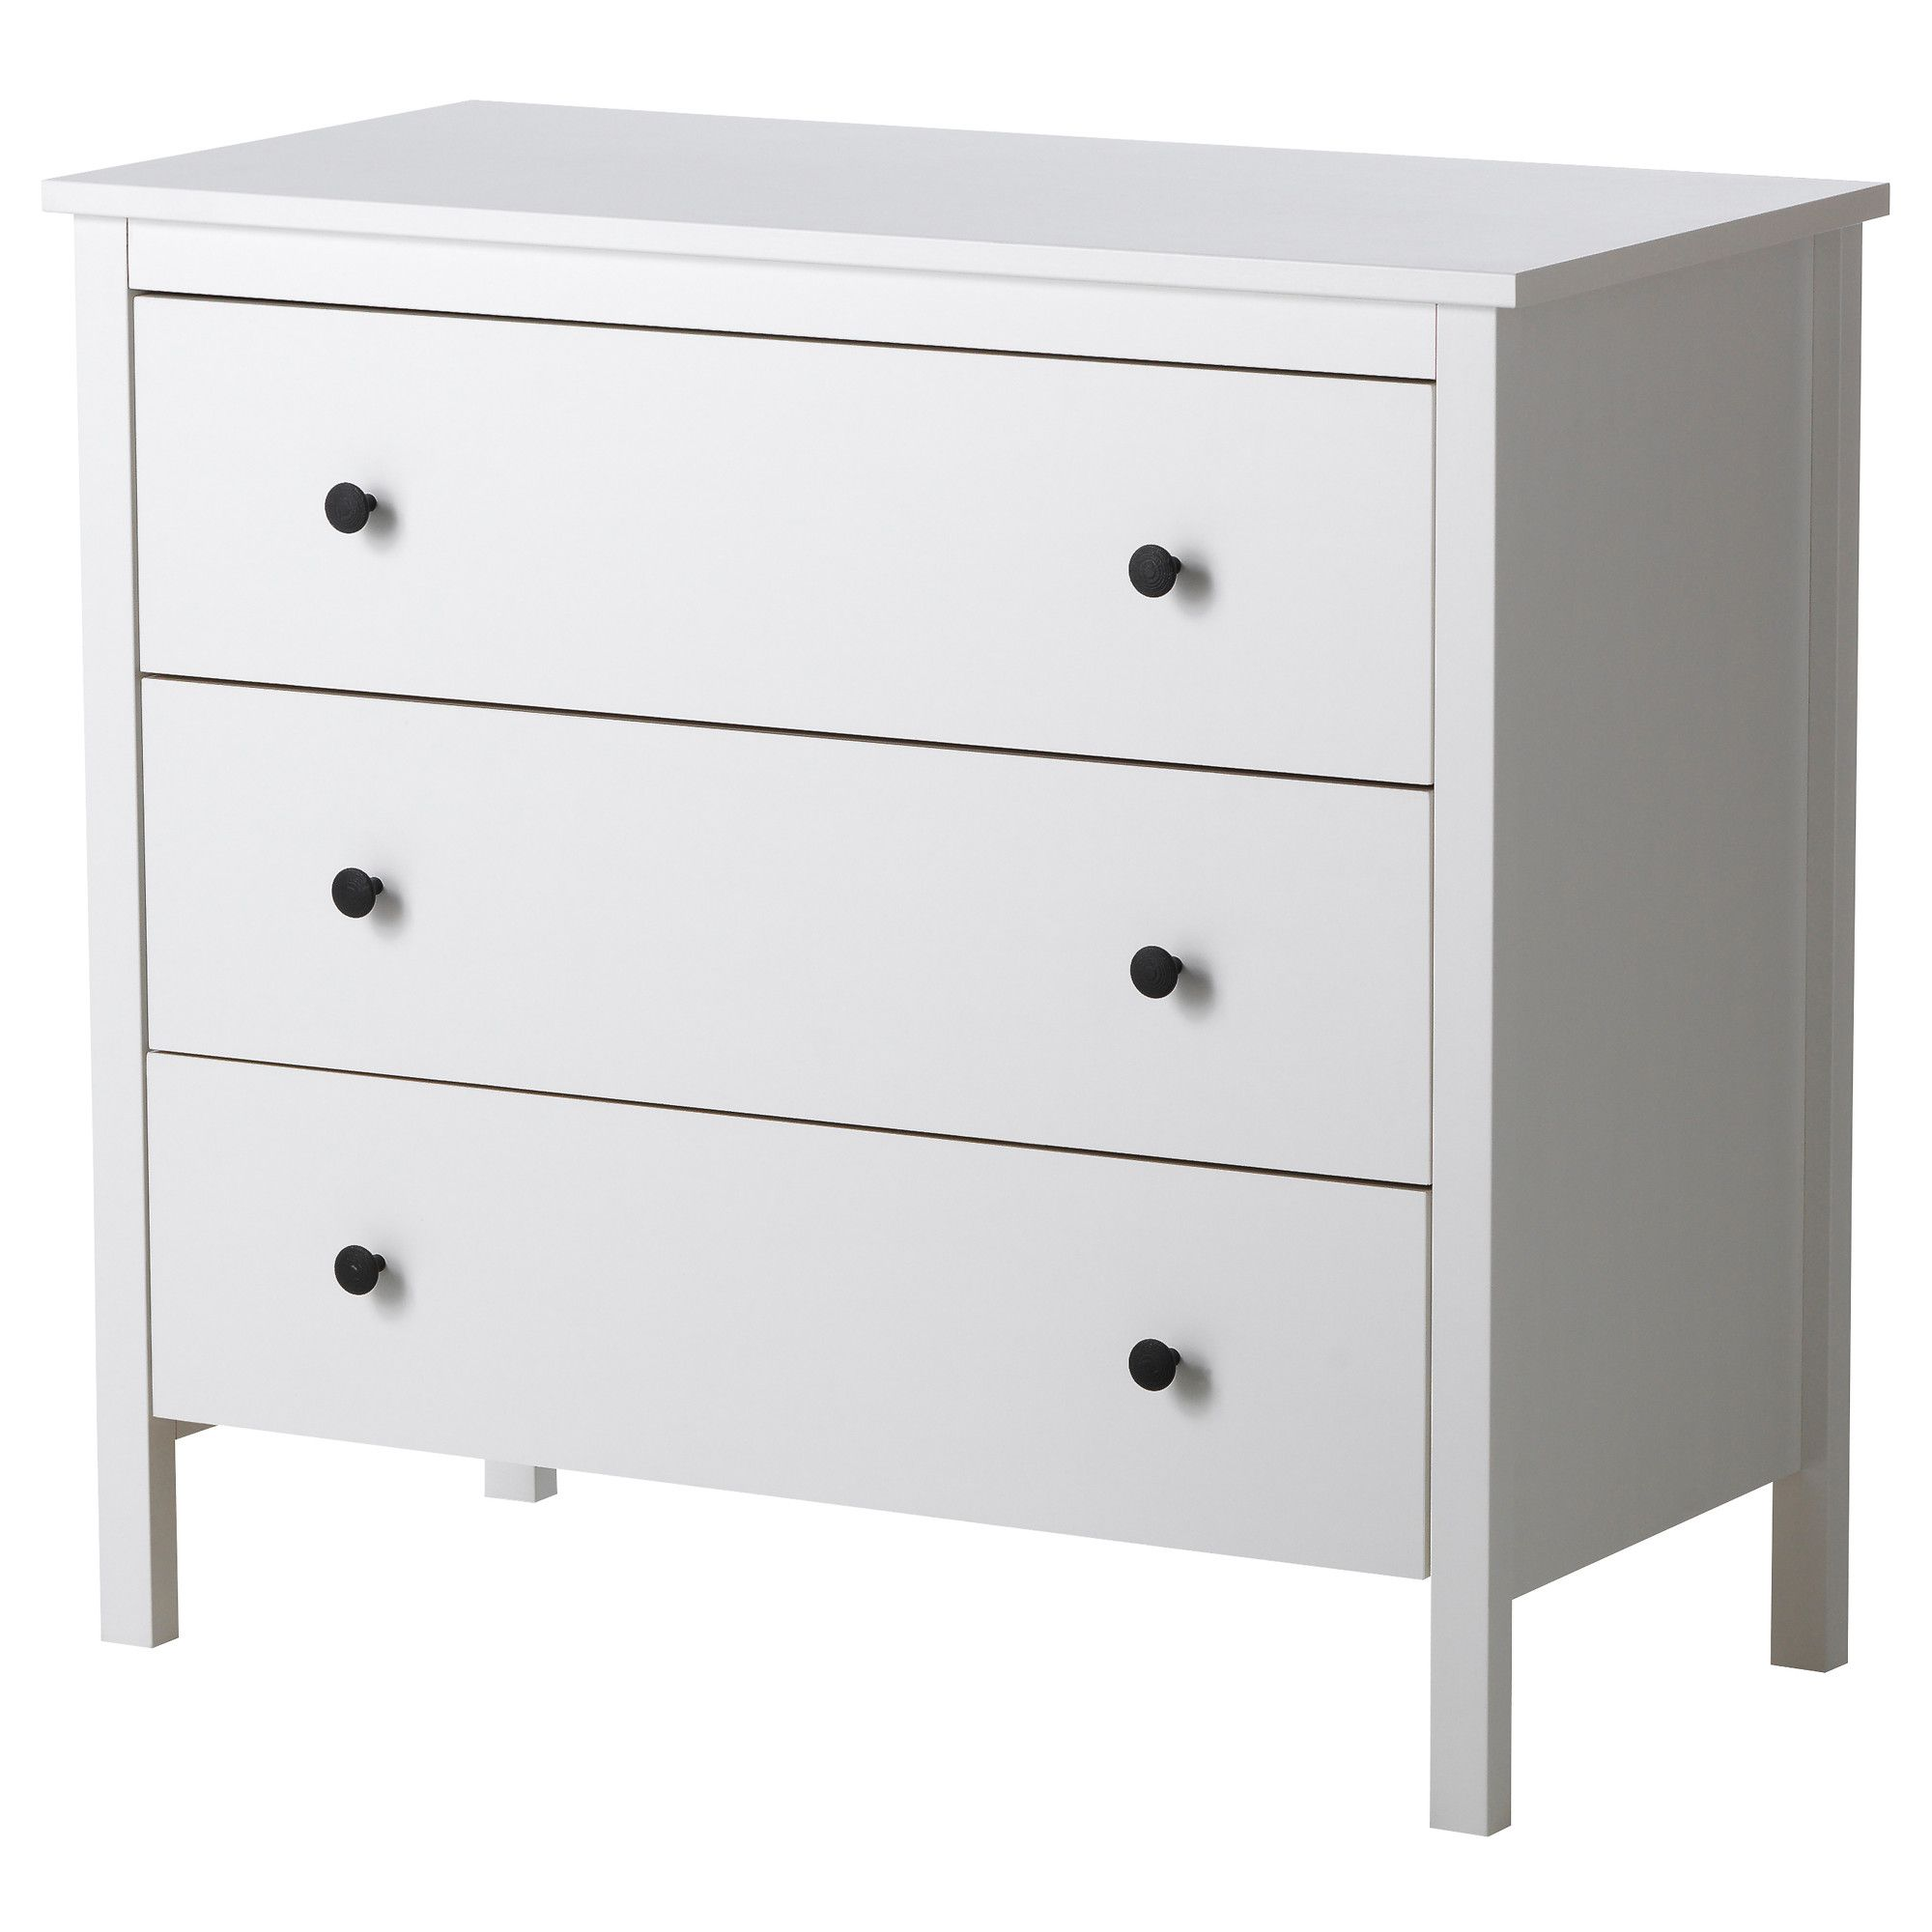 Koppang Koppang 3 Drawer Chest Ikea Project Twins Nursery Baby